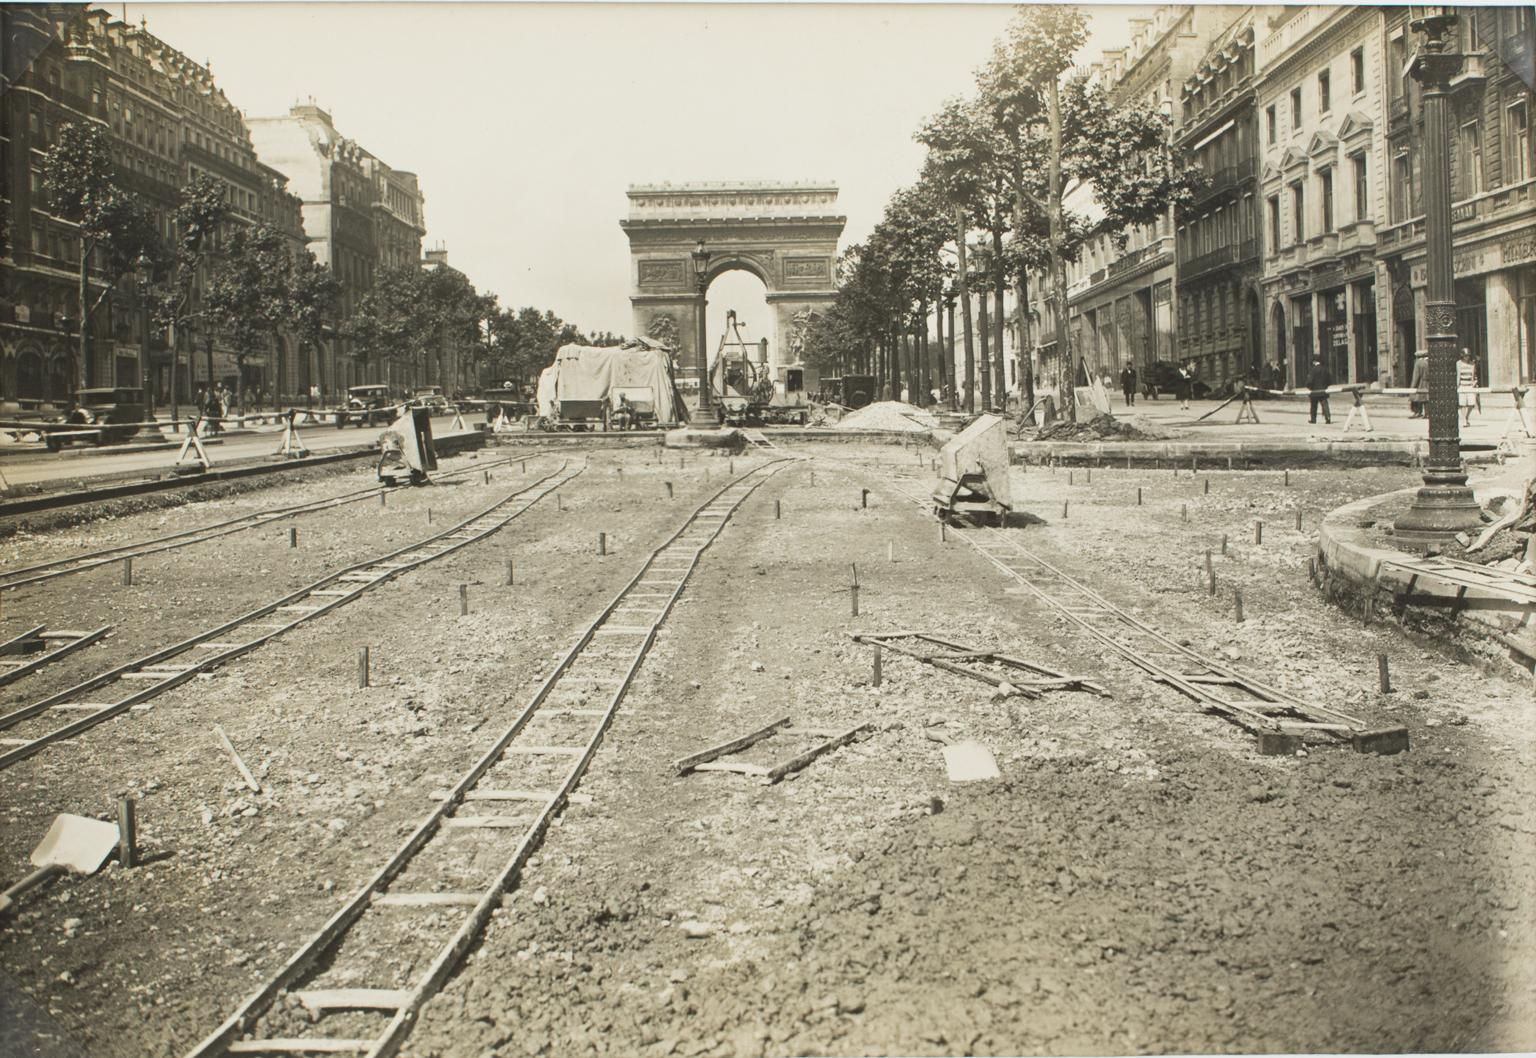 Works in The Champs Elysées Paris  - Silver Gelatin Black and White Photography